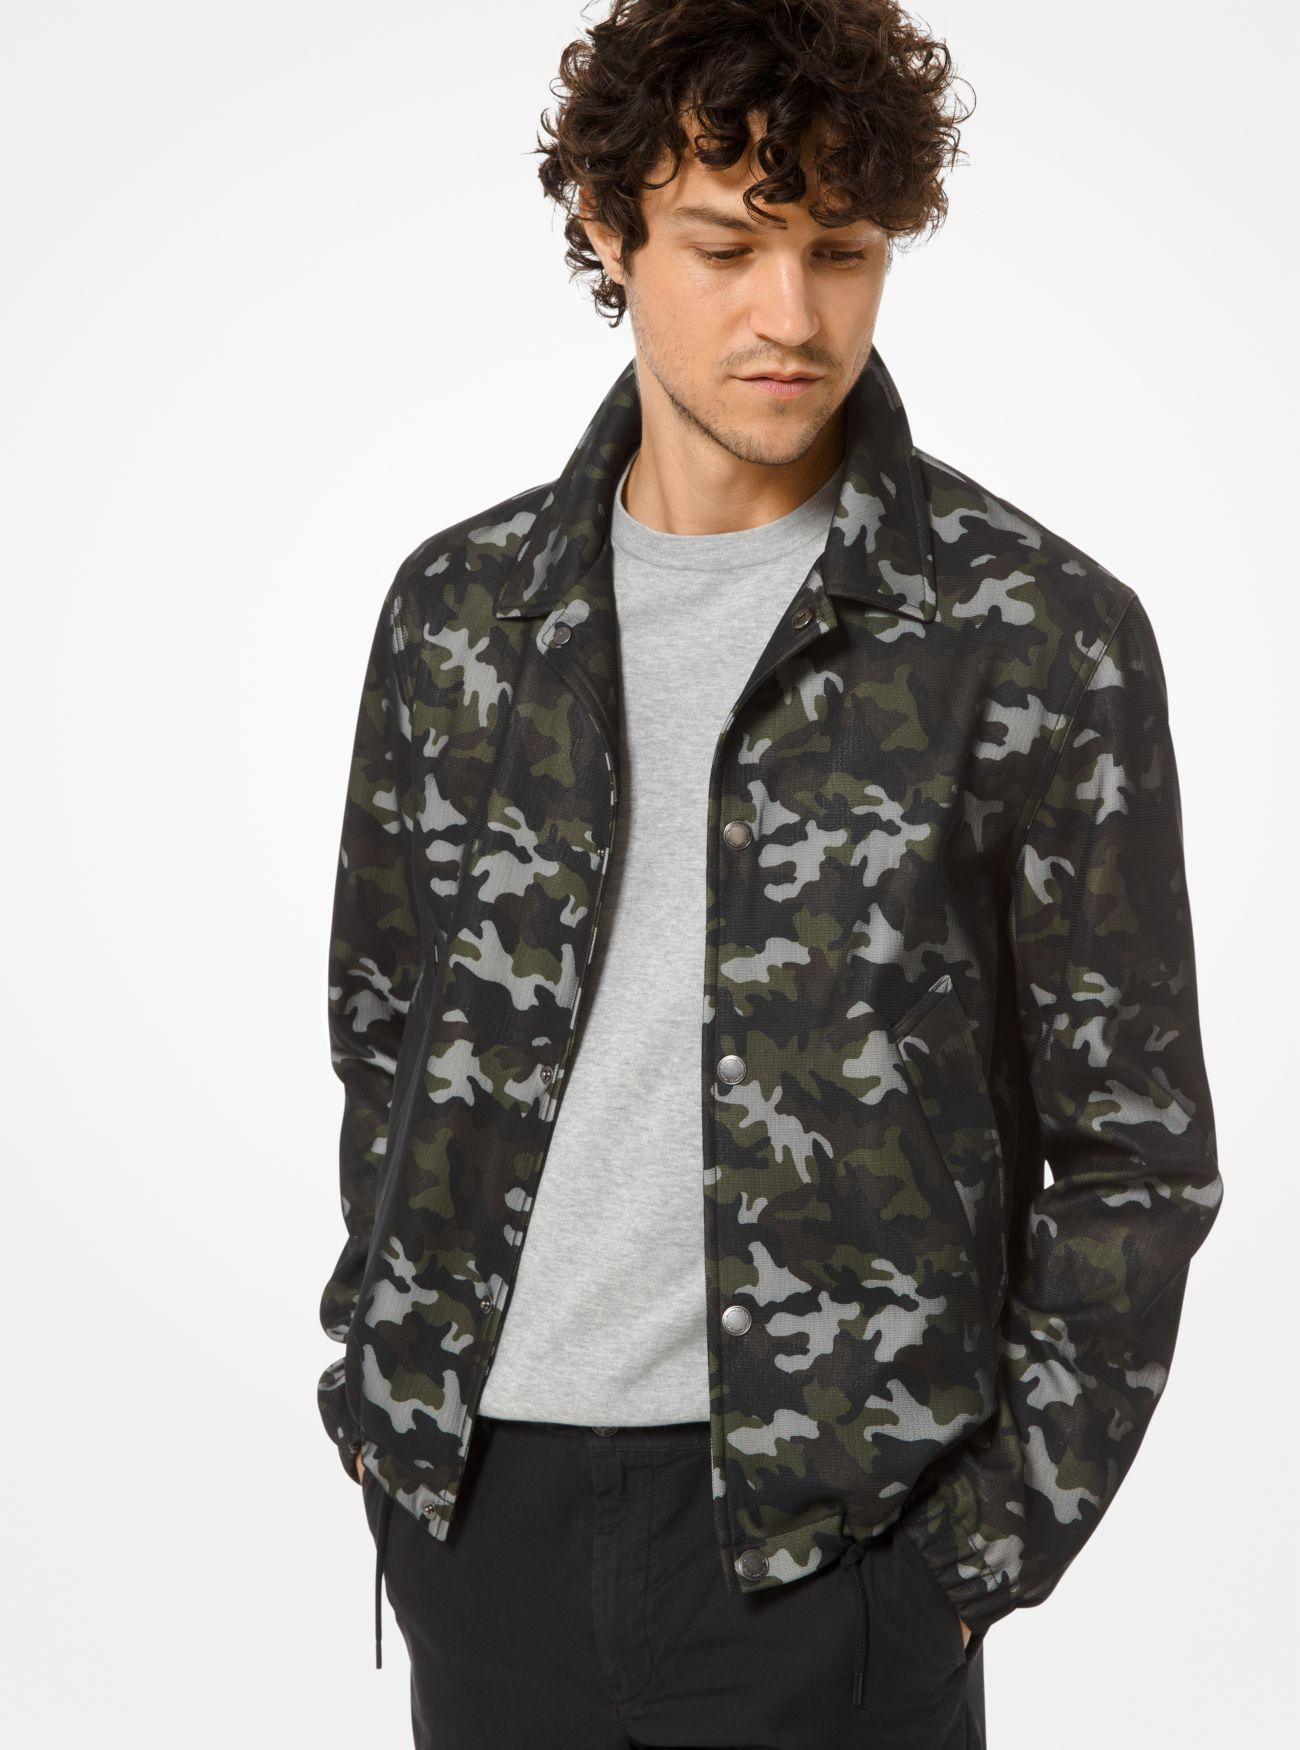 e8ec18907a98 Lyst - Michael Kors Camouflage Jacket in Green for Men